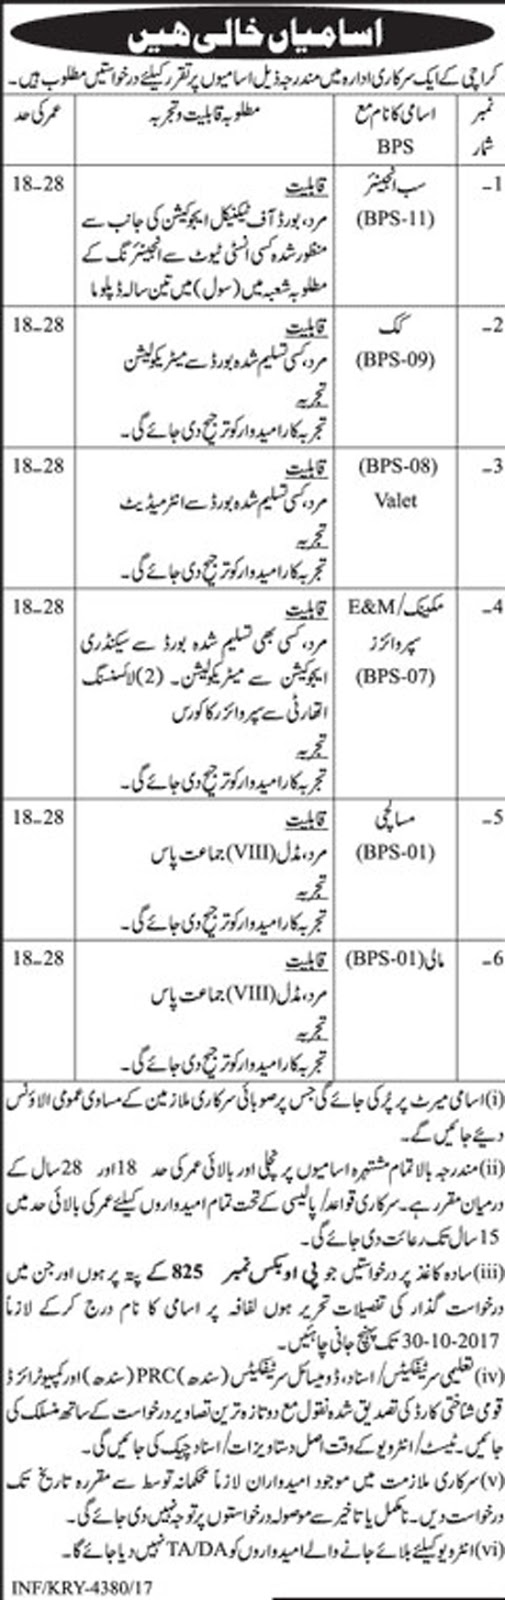 Sub Engineer, Cook, Supervisor, Mali Jobs In Government Department Karachi  Oct 2017